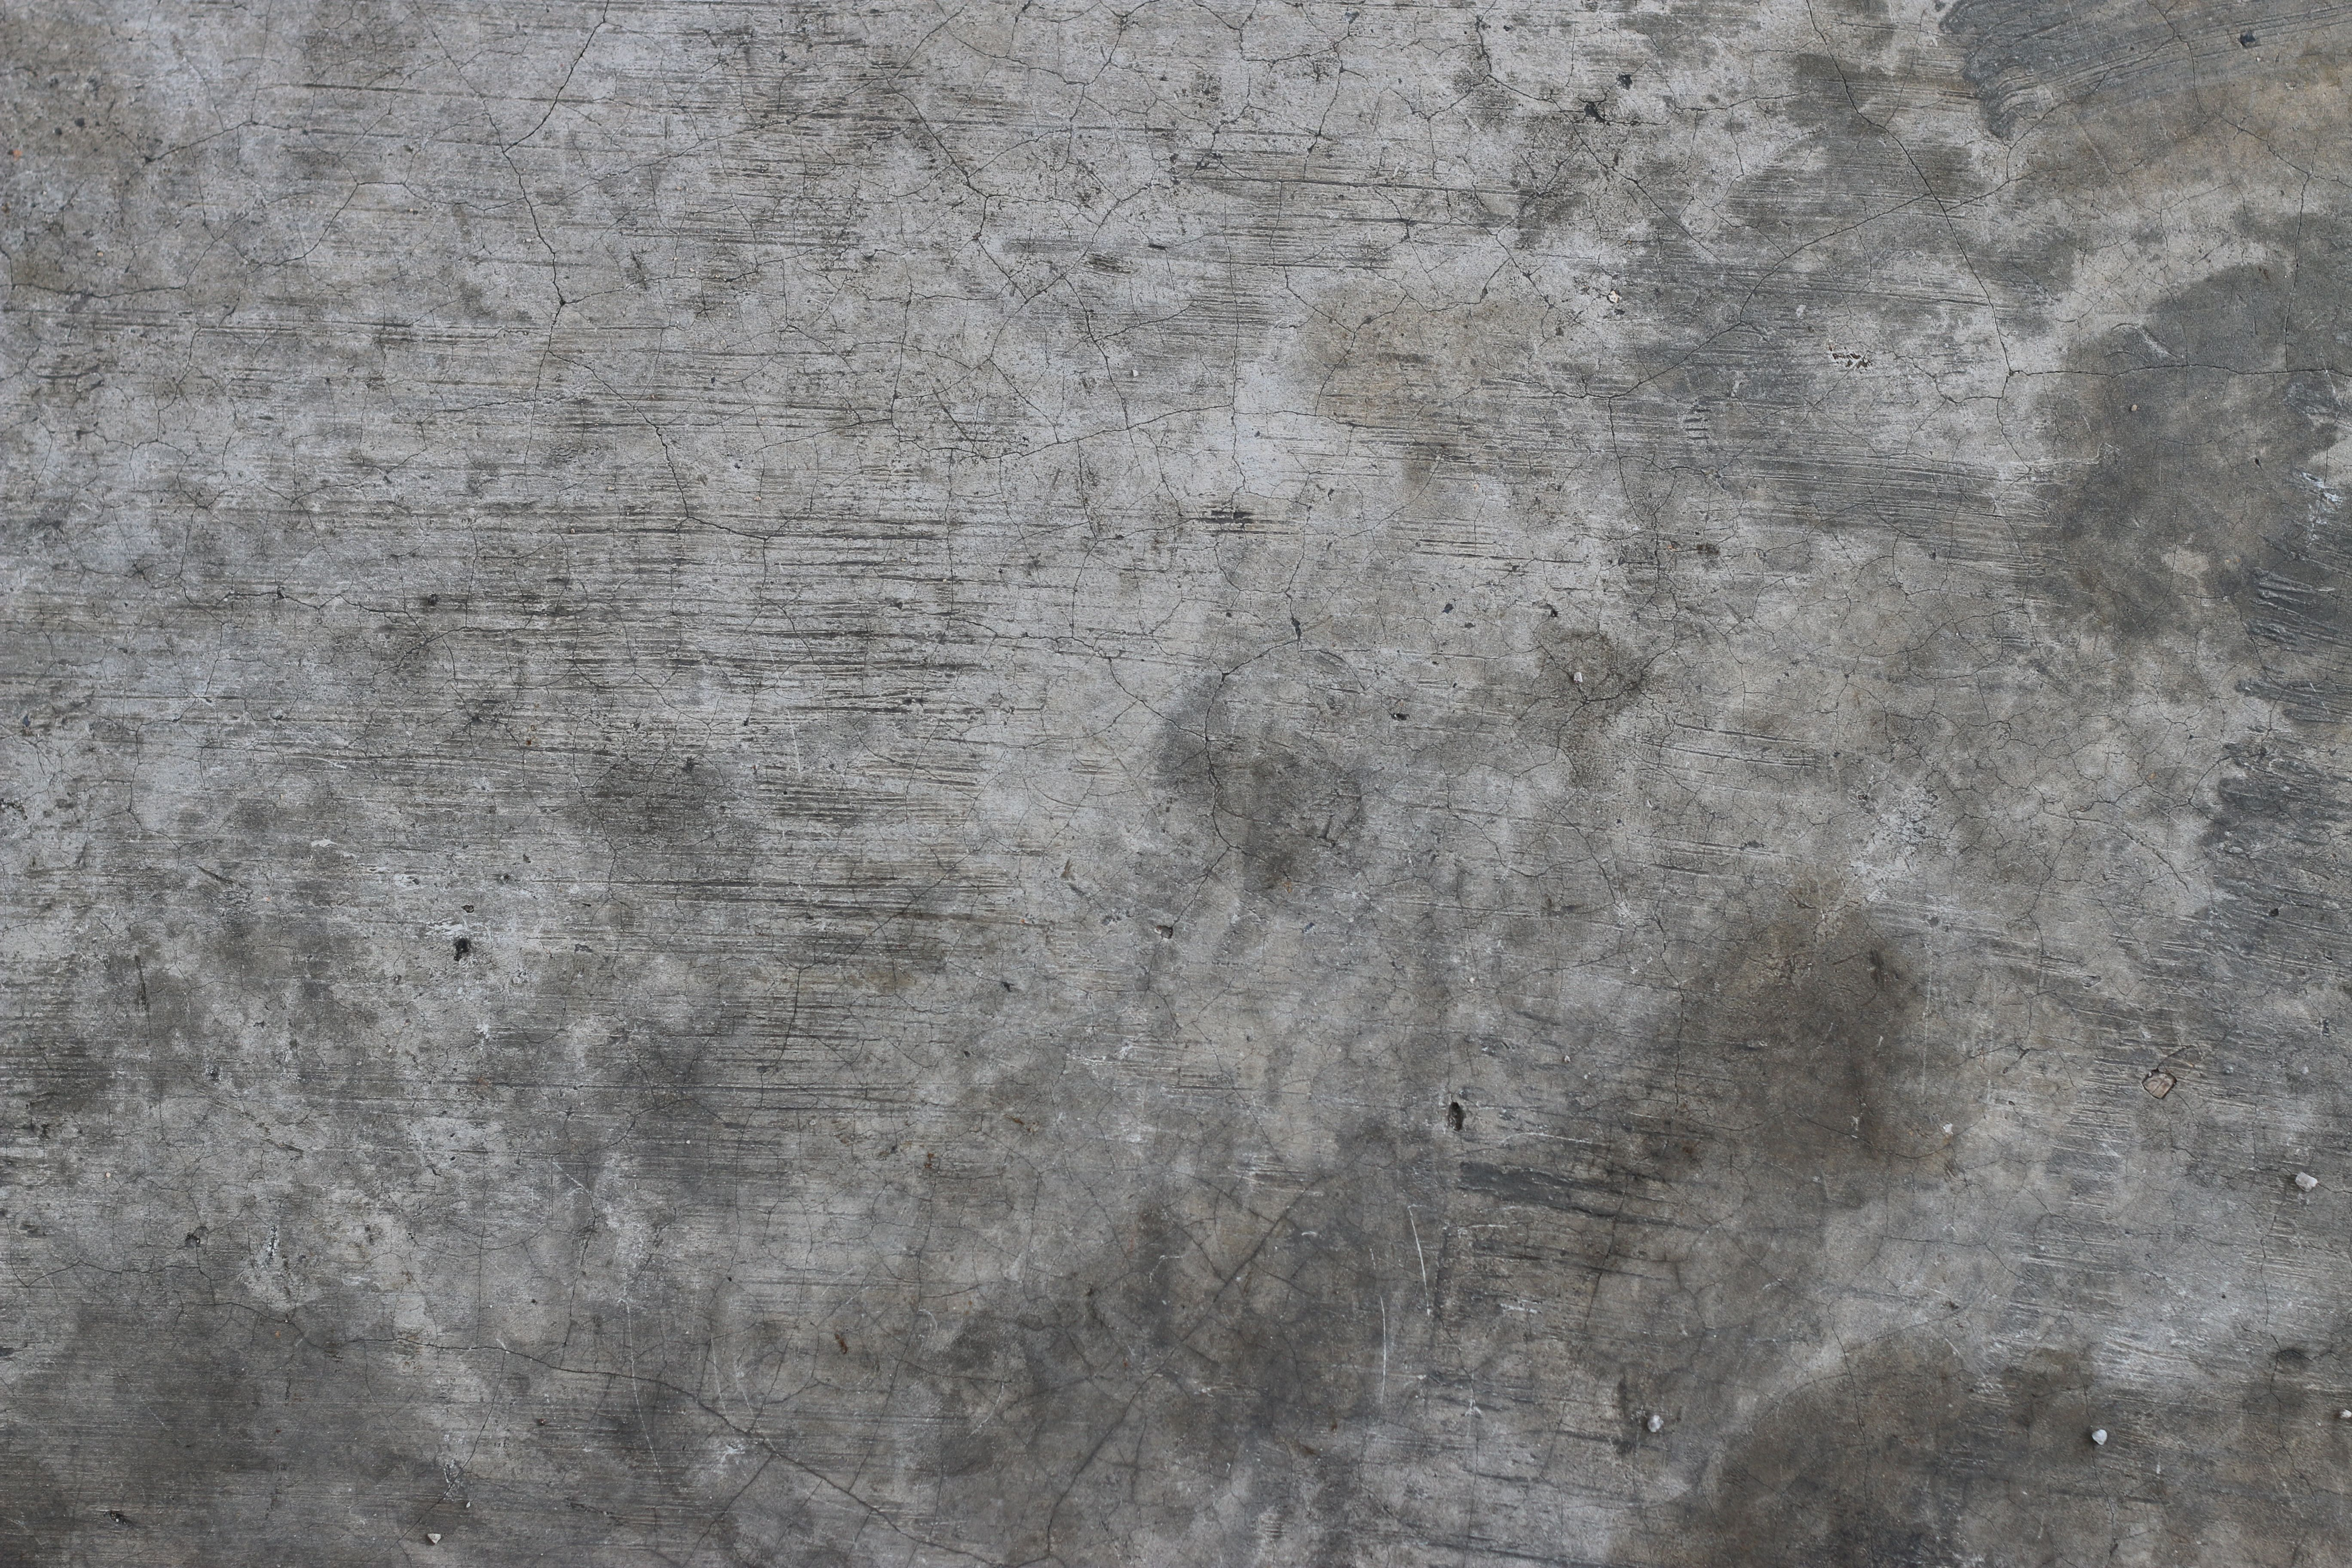 Texturing Concrete Walls Concrete Texture Pesquisa Google The Snake Collection